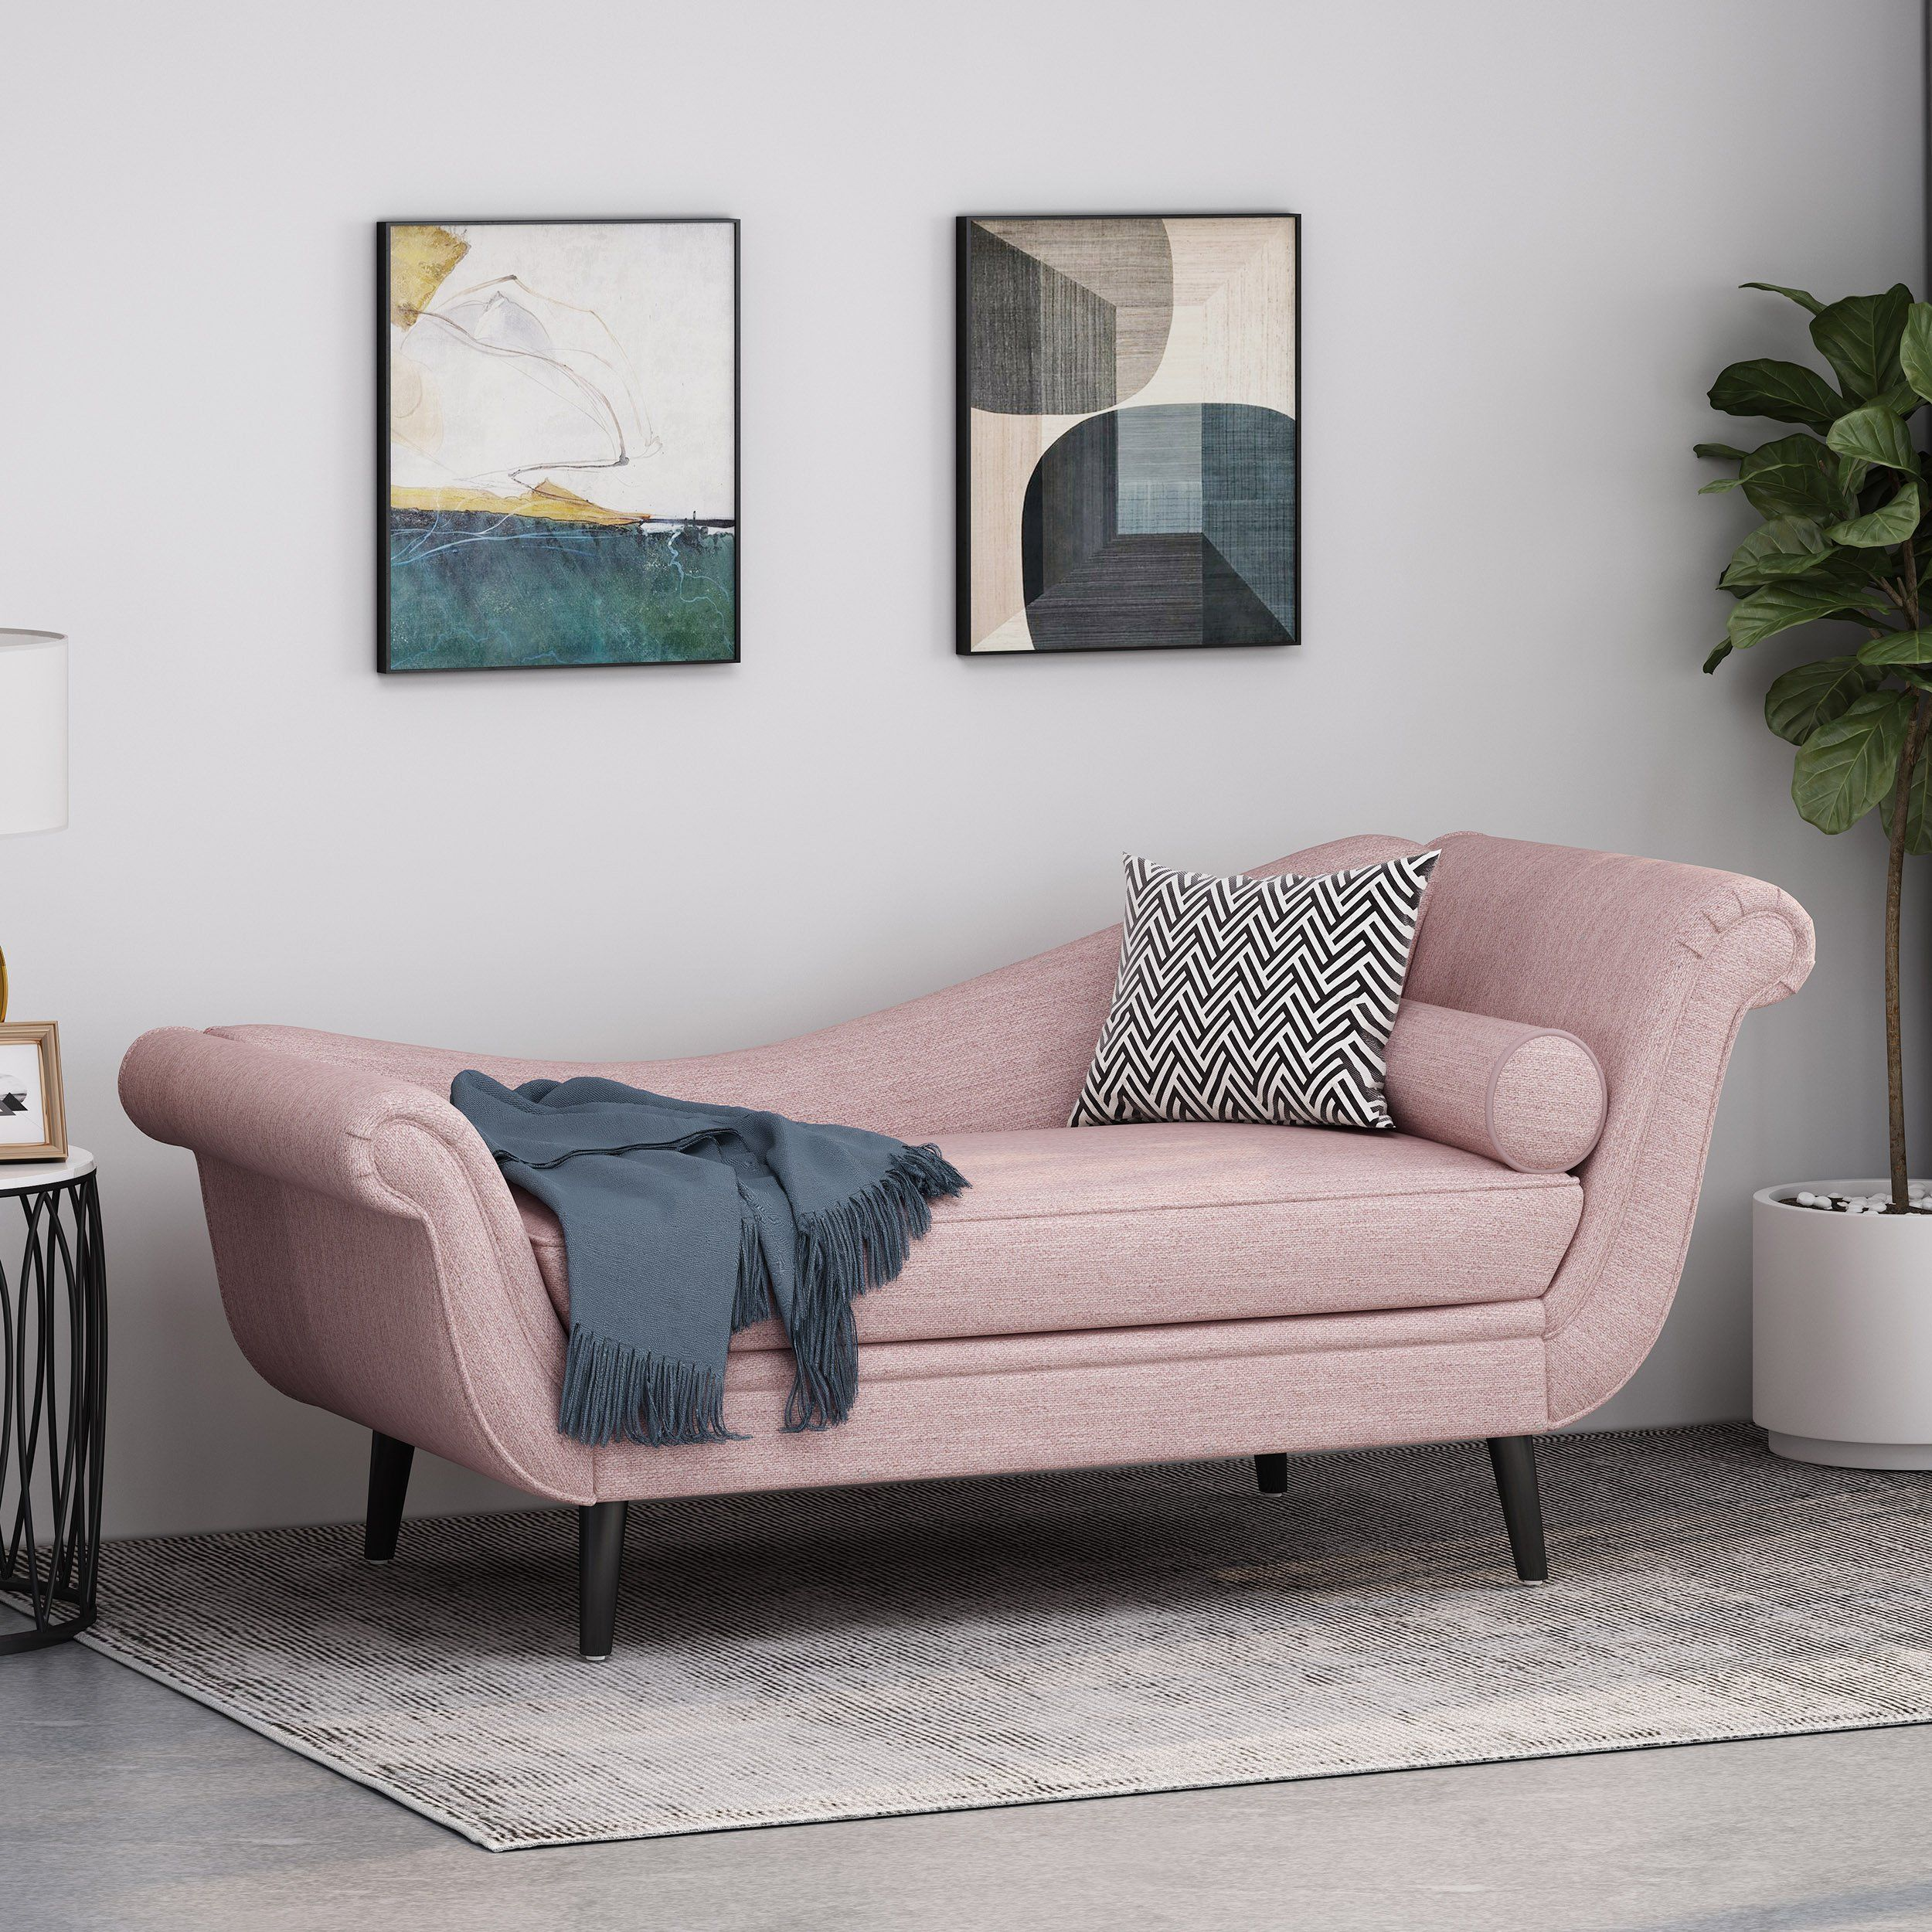 Living Room Chairs Storage Chaise Chaise Upholstered Chaise Lounge